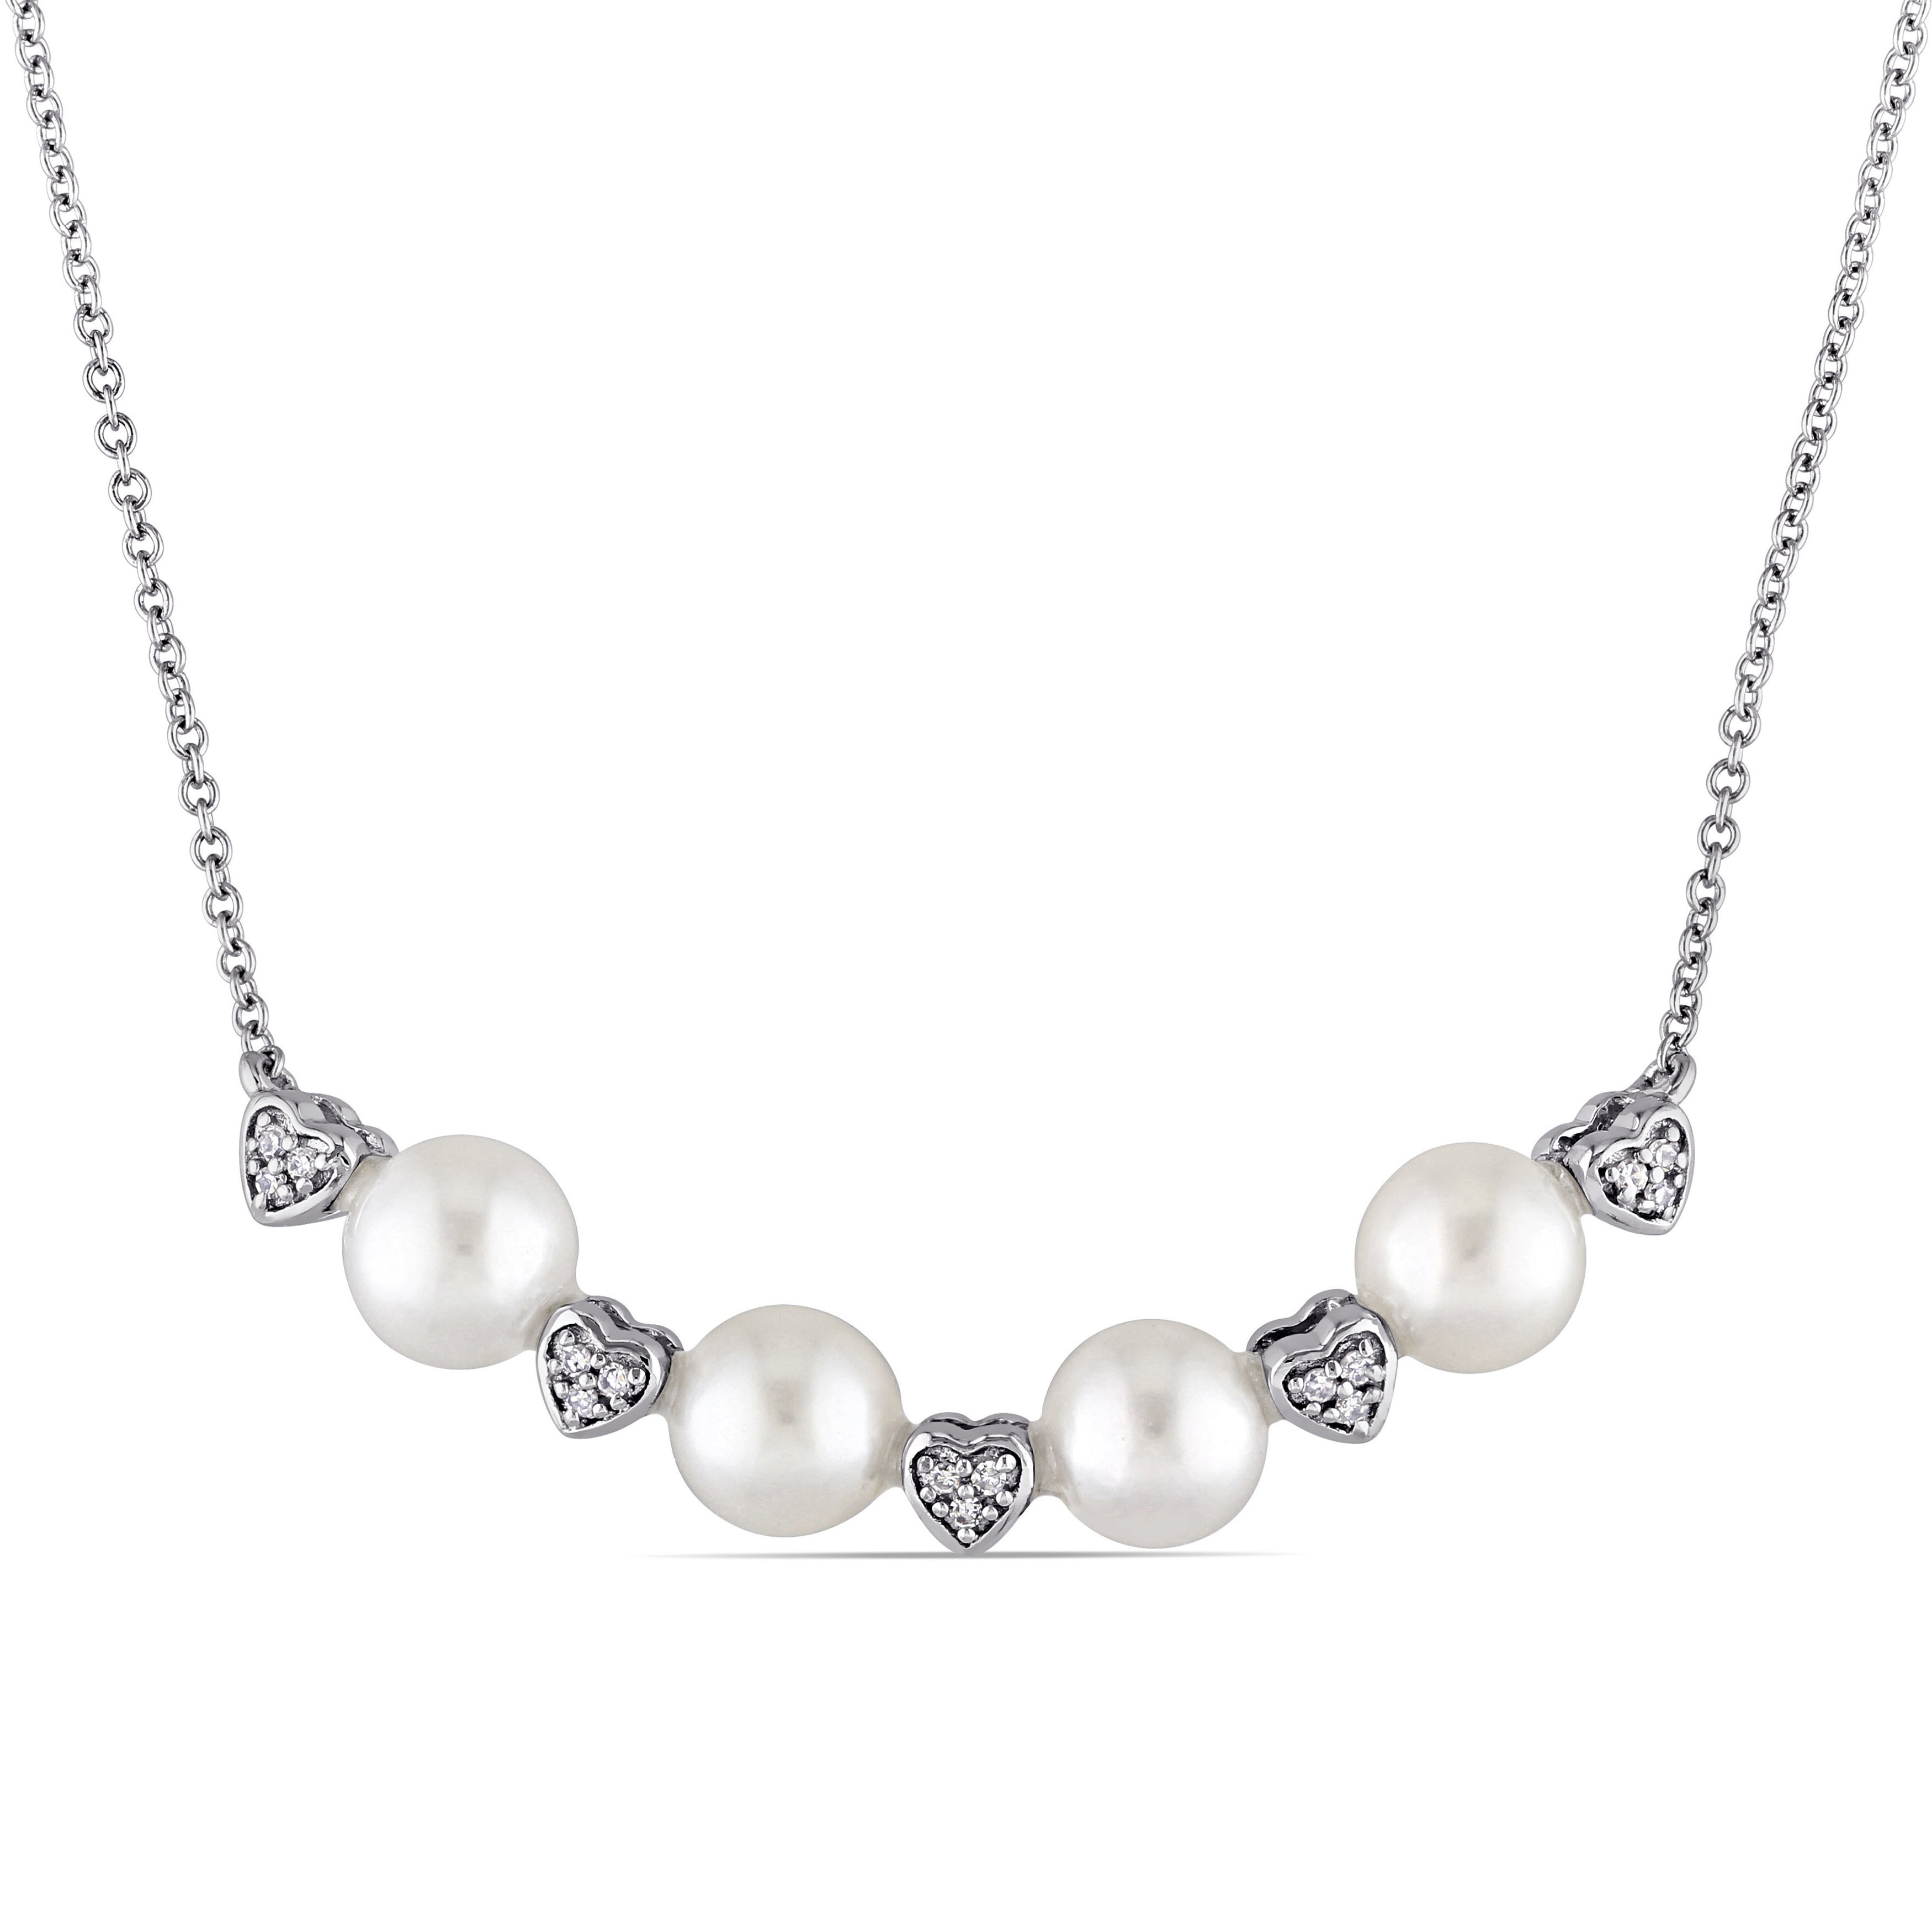 White 5.5-6mm AAA Quality Freshwater Cultured Pearl Necklace